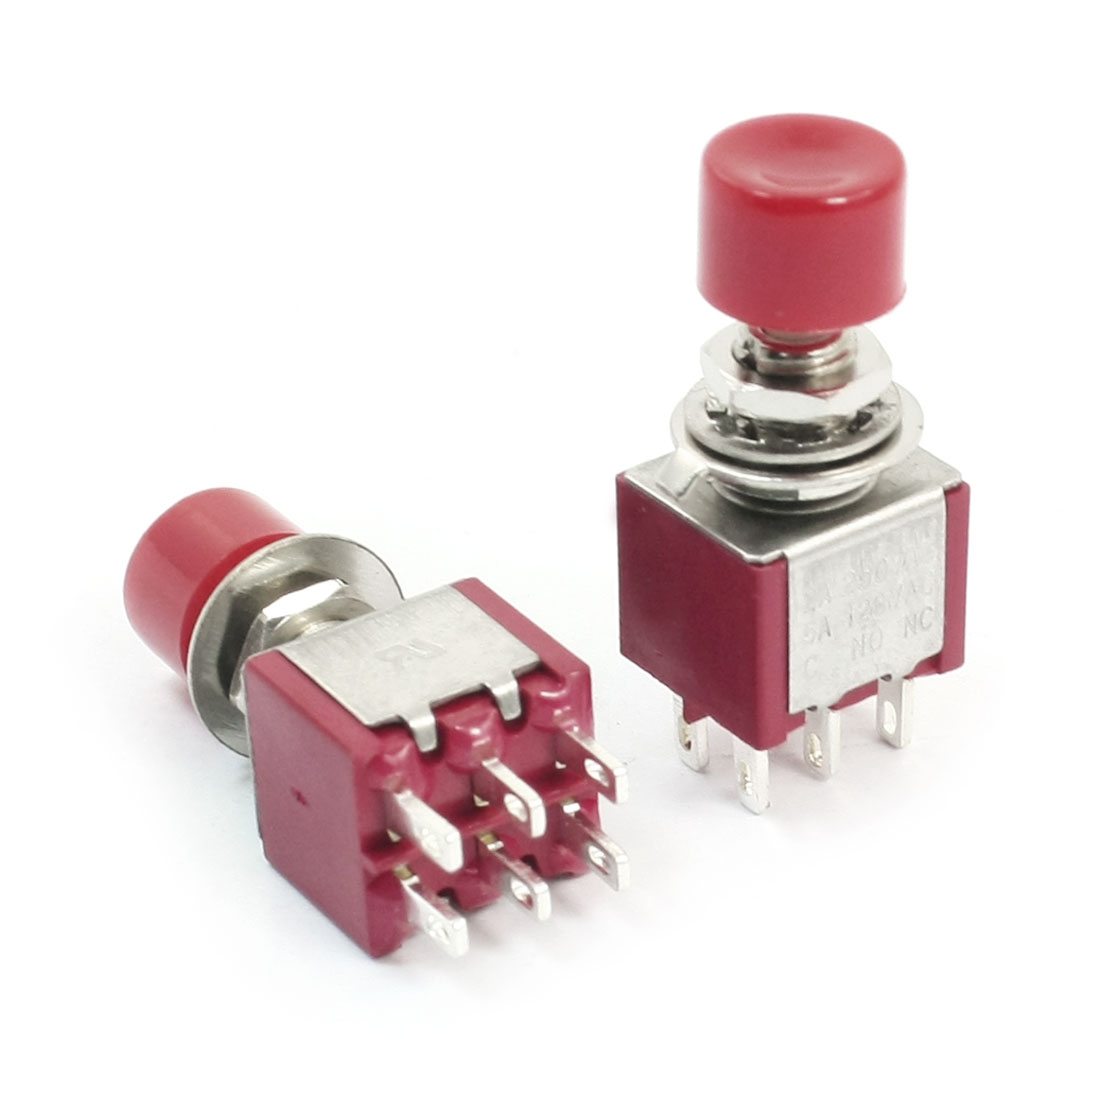 AC 250V 2A 6 Pin DPDT 2NO 2NC Momentary Red Round Push Button Switch 2Pcs